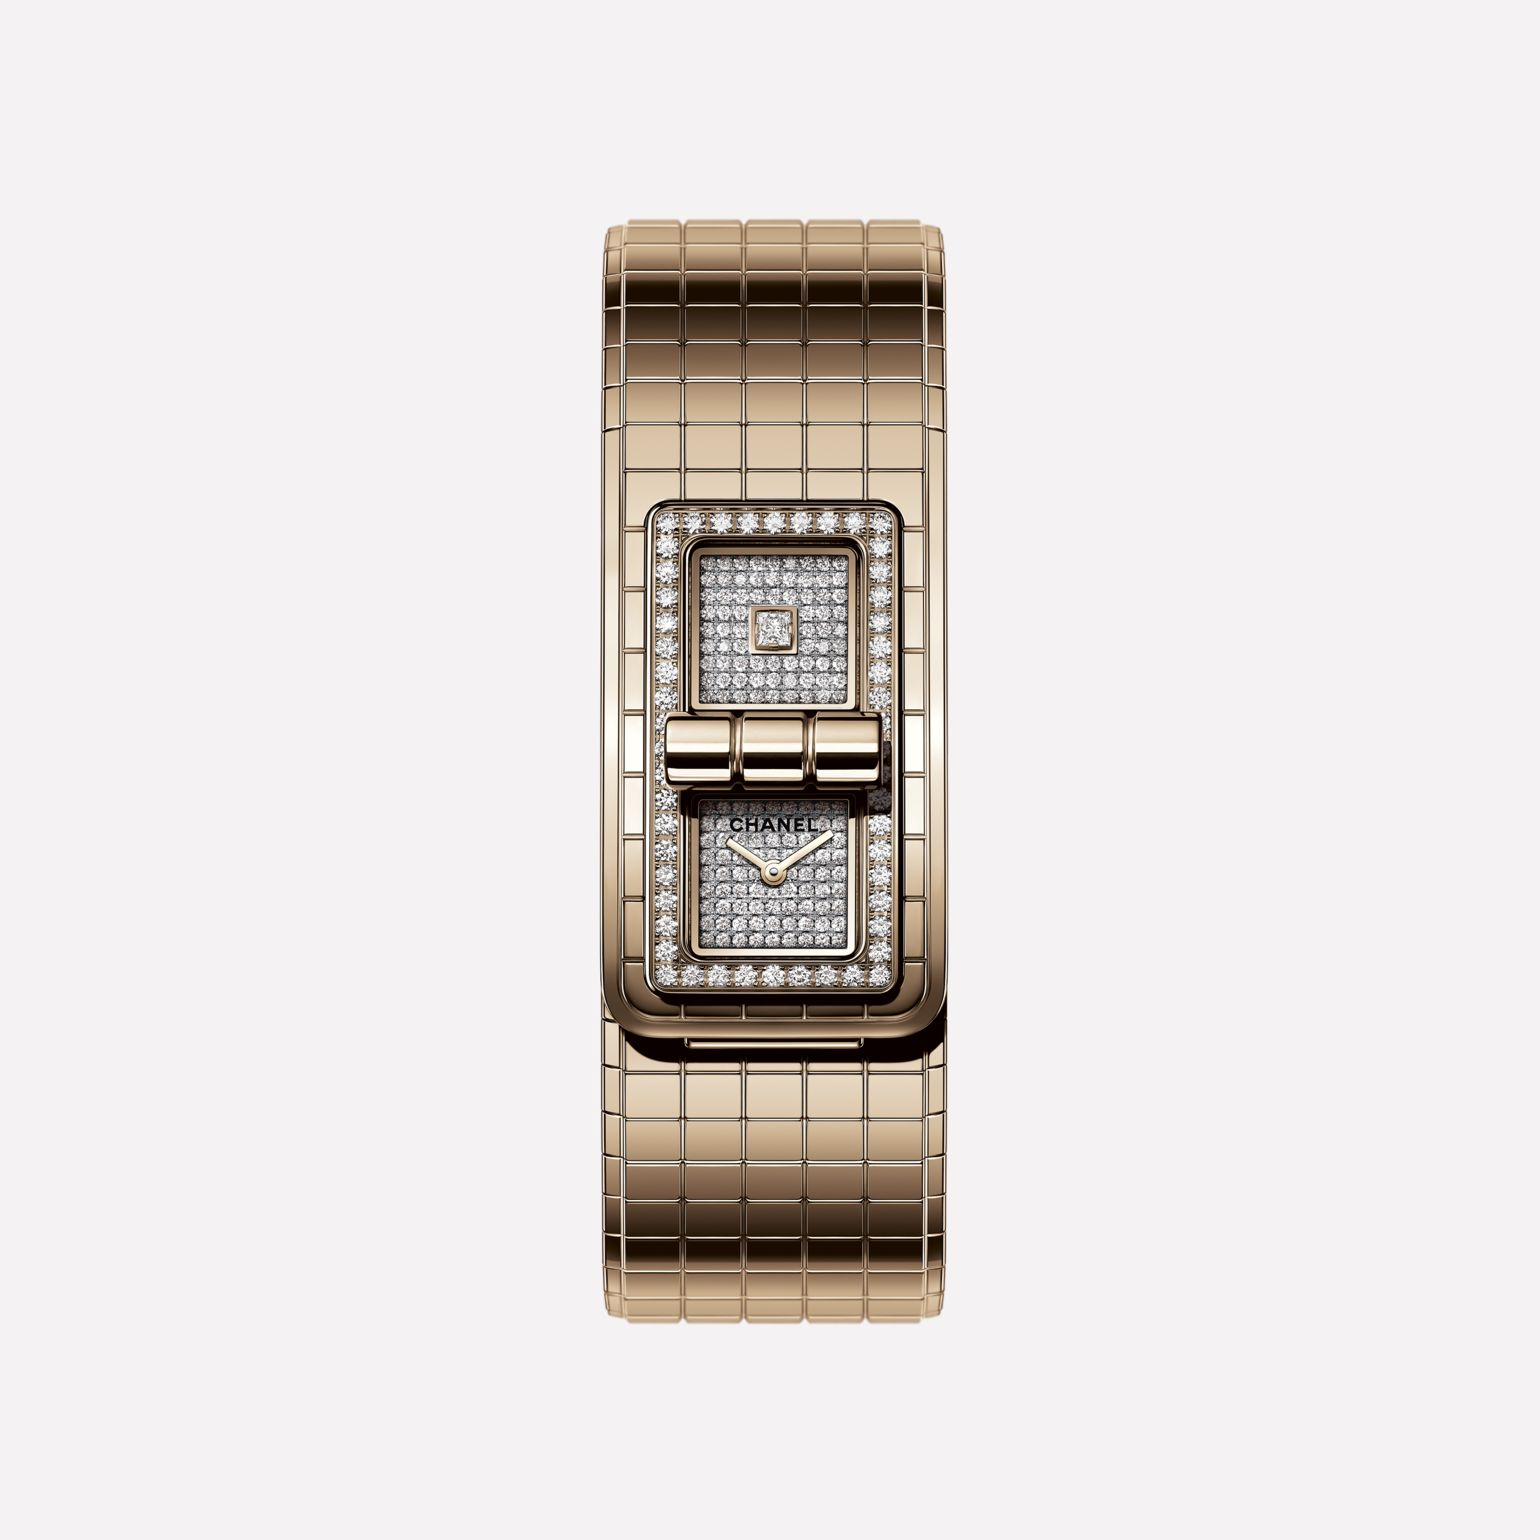 Montre CODE COCO OR BEIGE et diamants